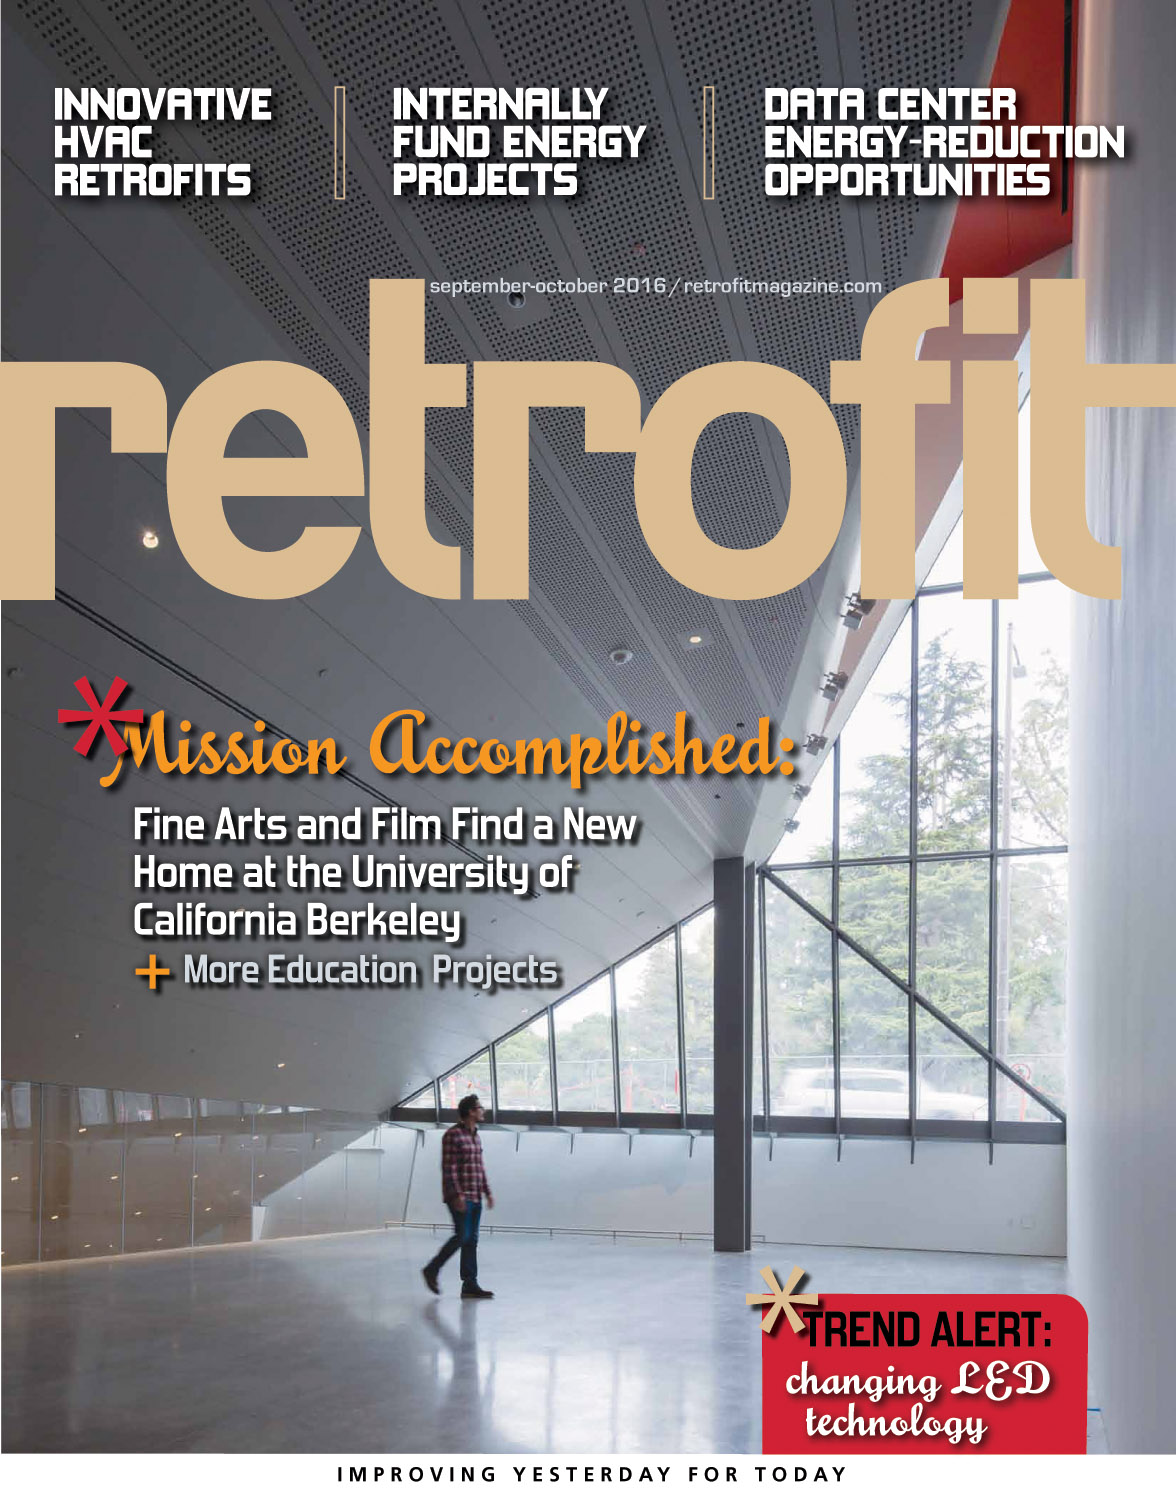 September-October issue of retrofit